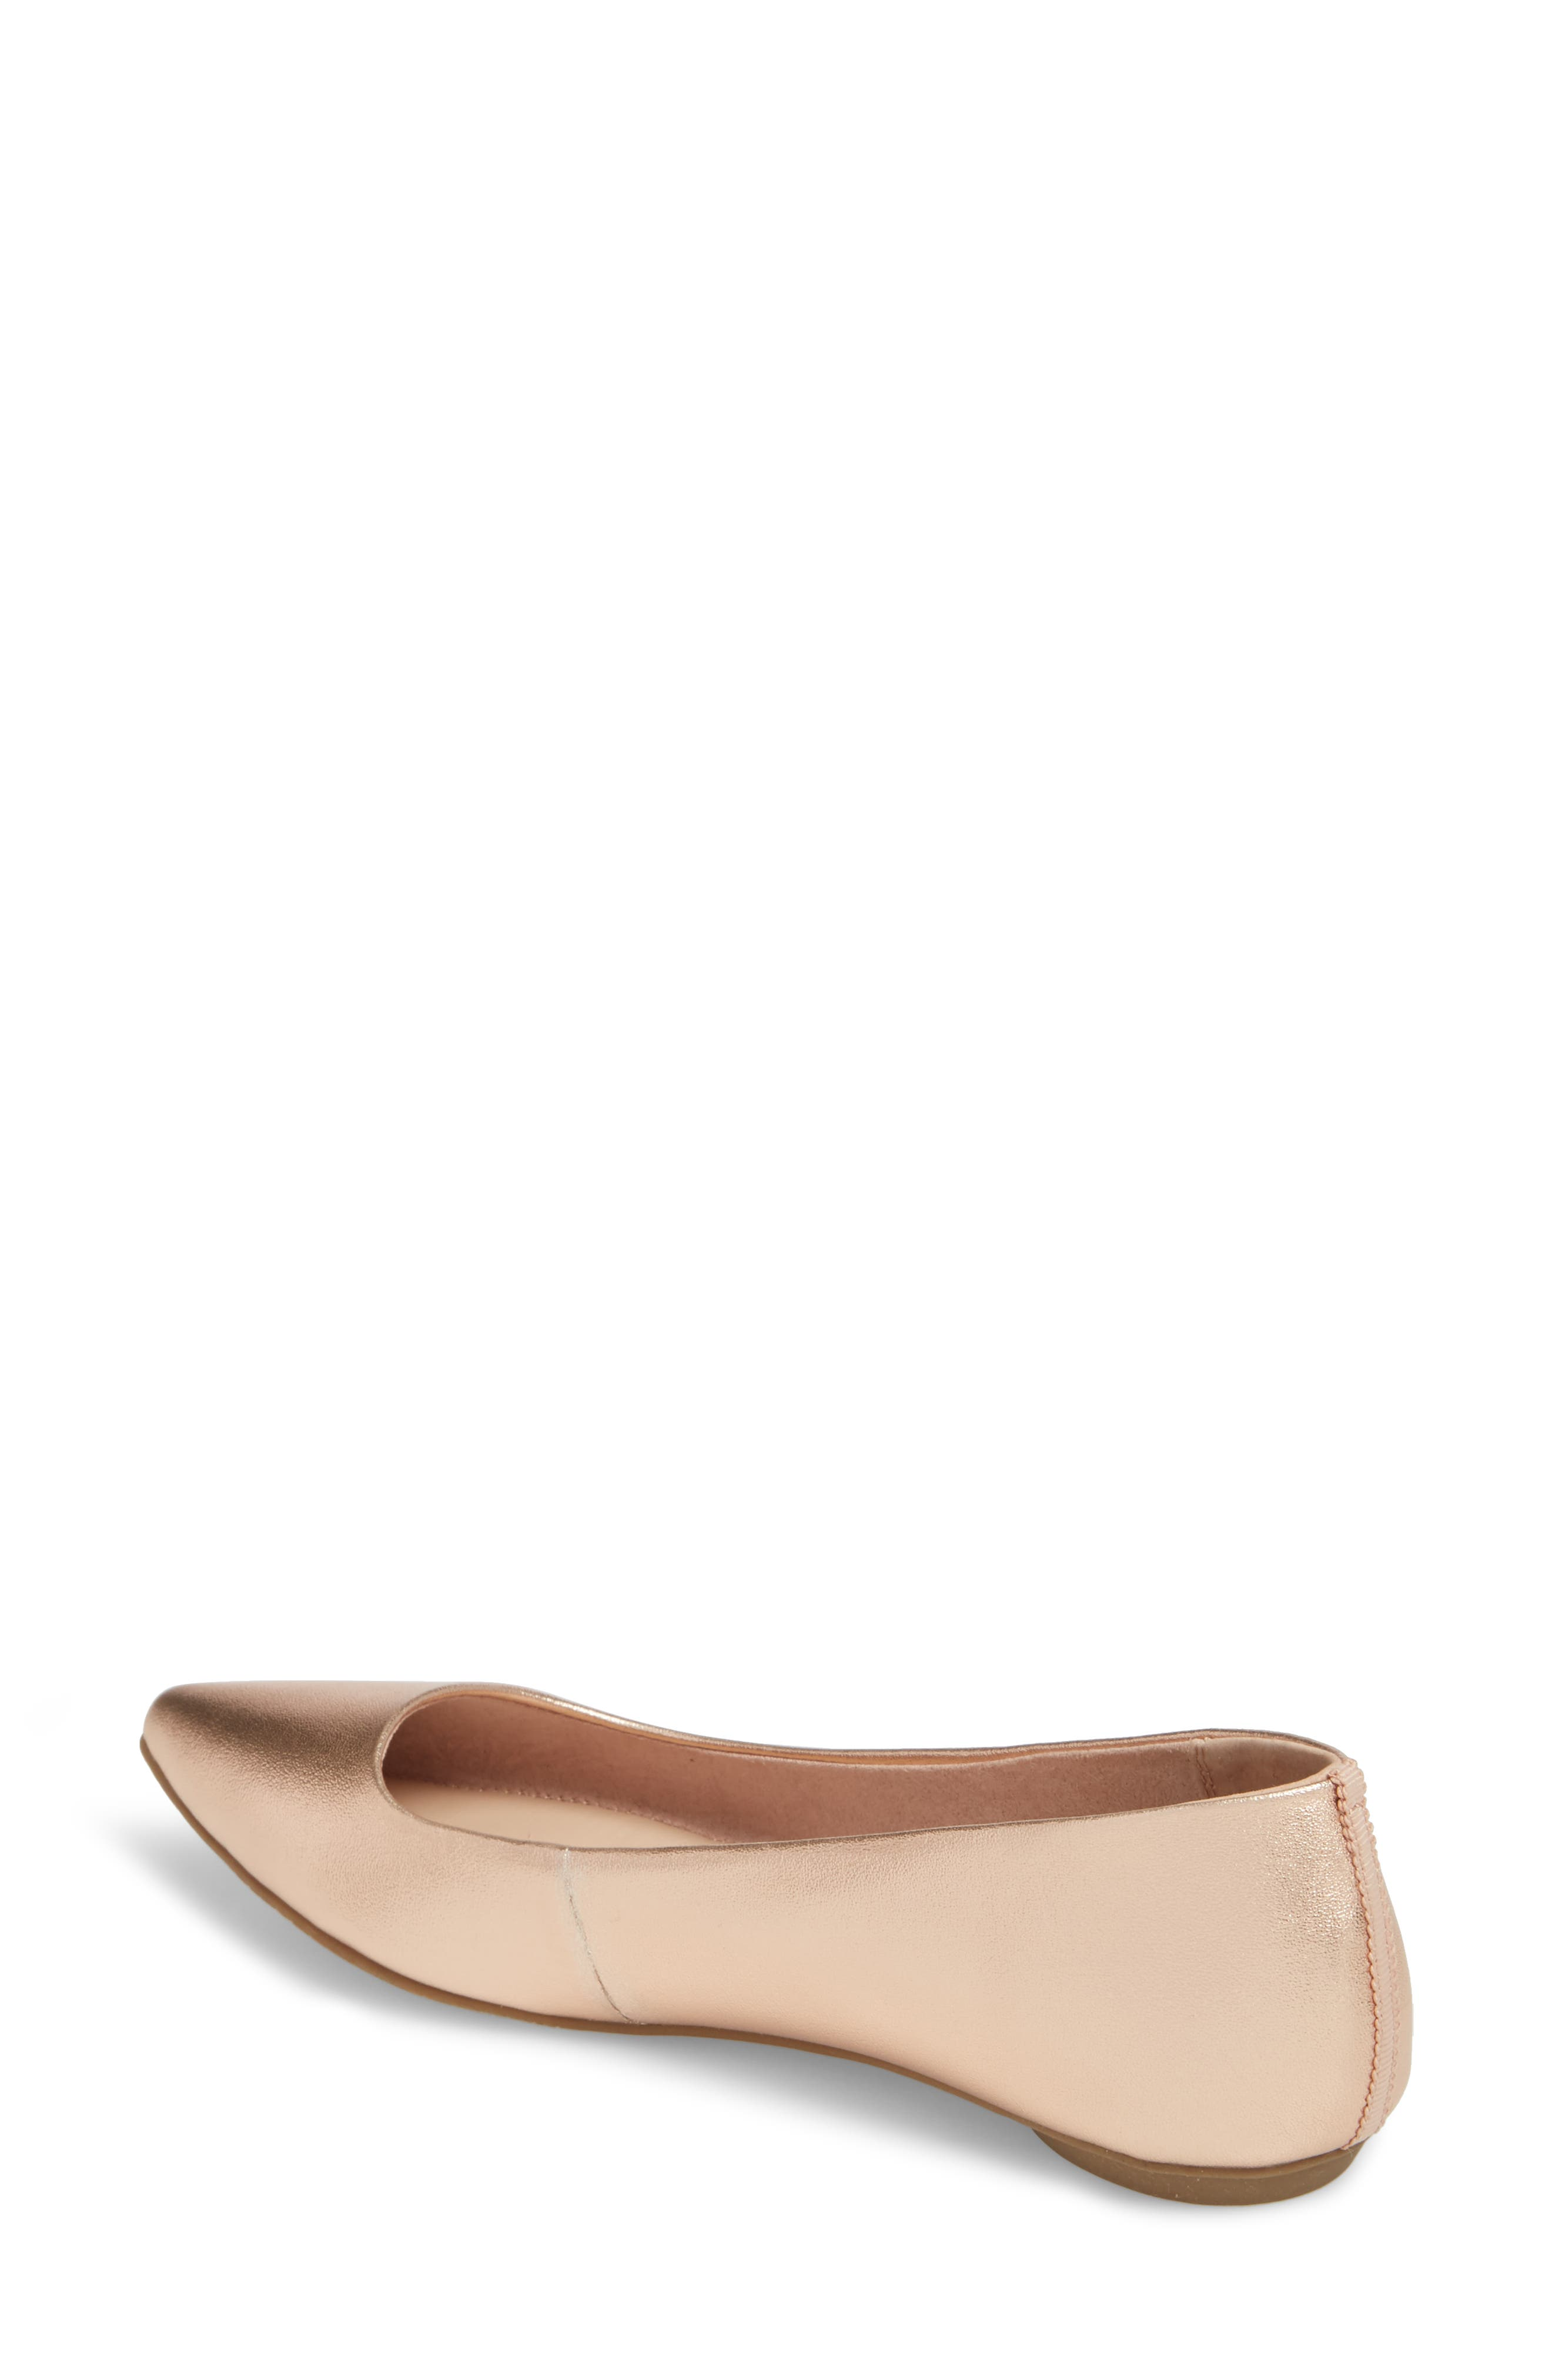 Sasha Flat,                             Alternate thumbnail 2, color,                             Rose Gold Faux Leather